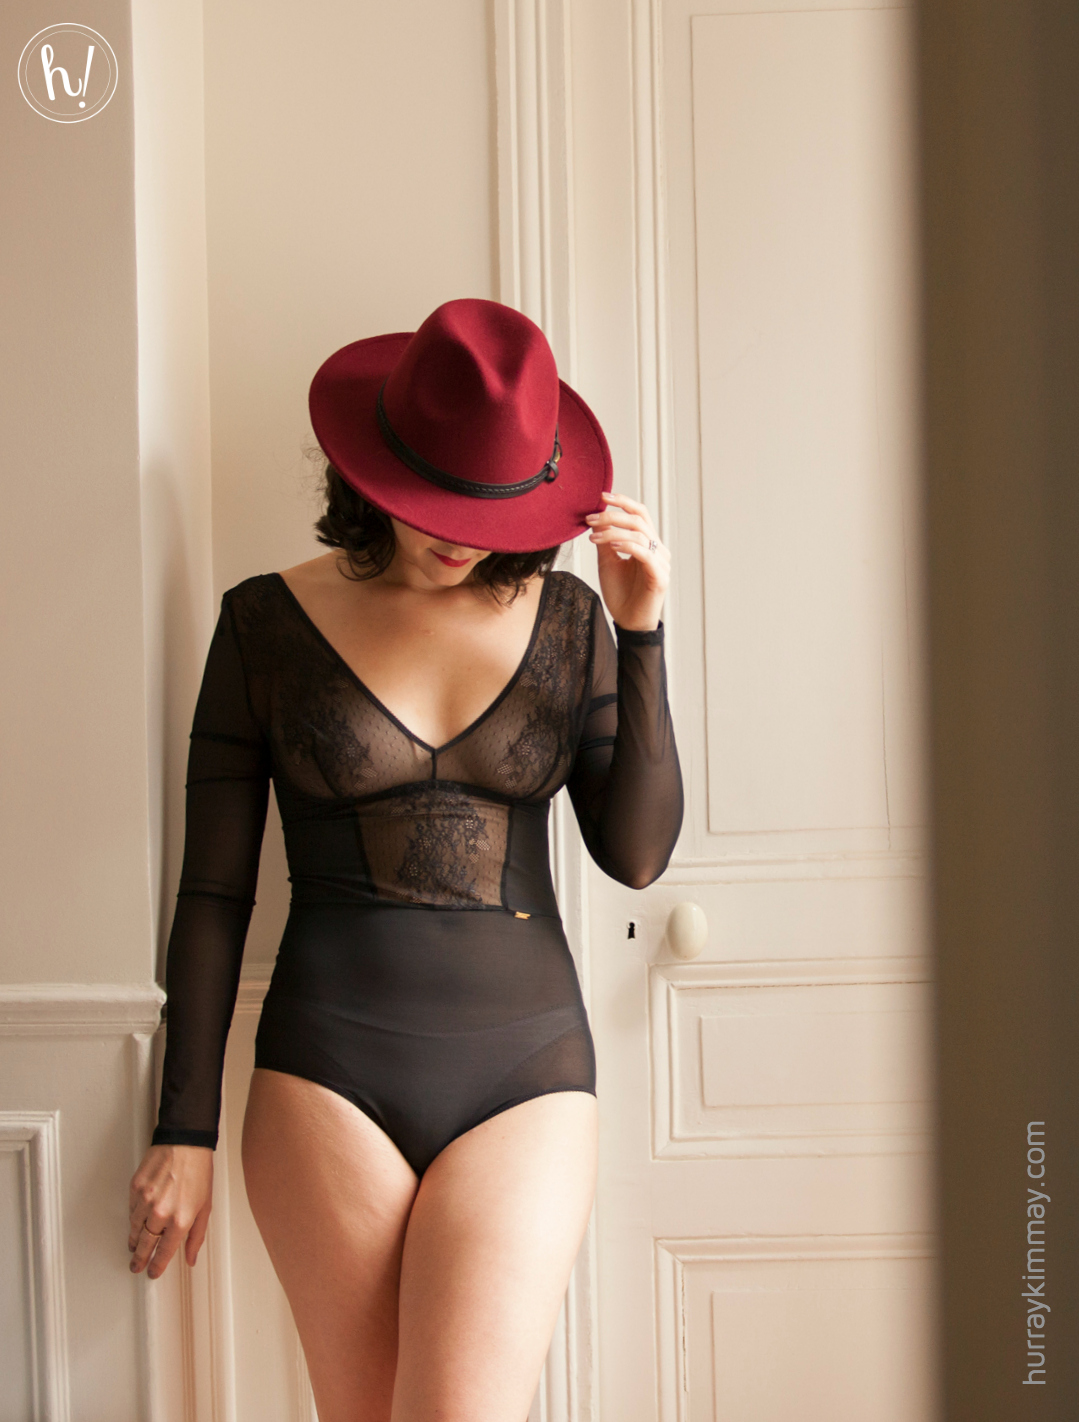 f336bf375c8 Some bodysuits come with built-in shapewear or panels for a thin physique.  Usually